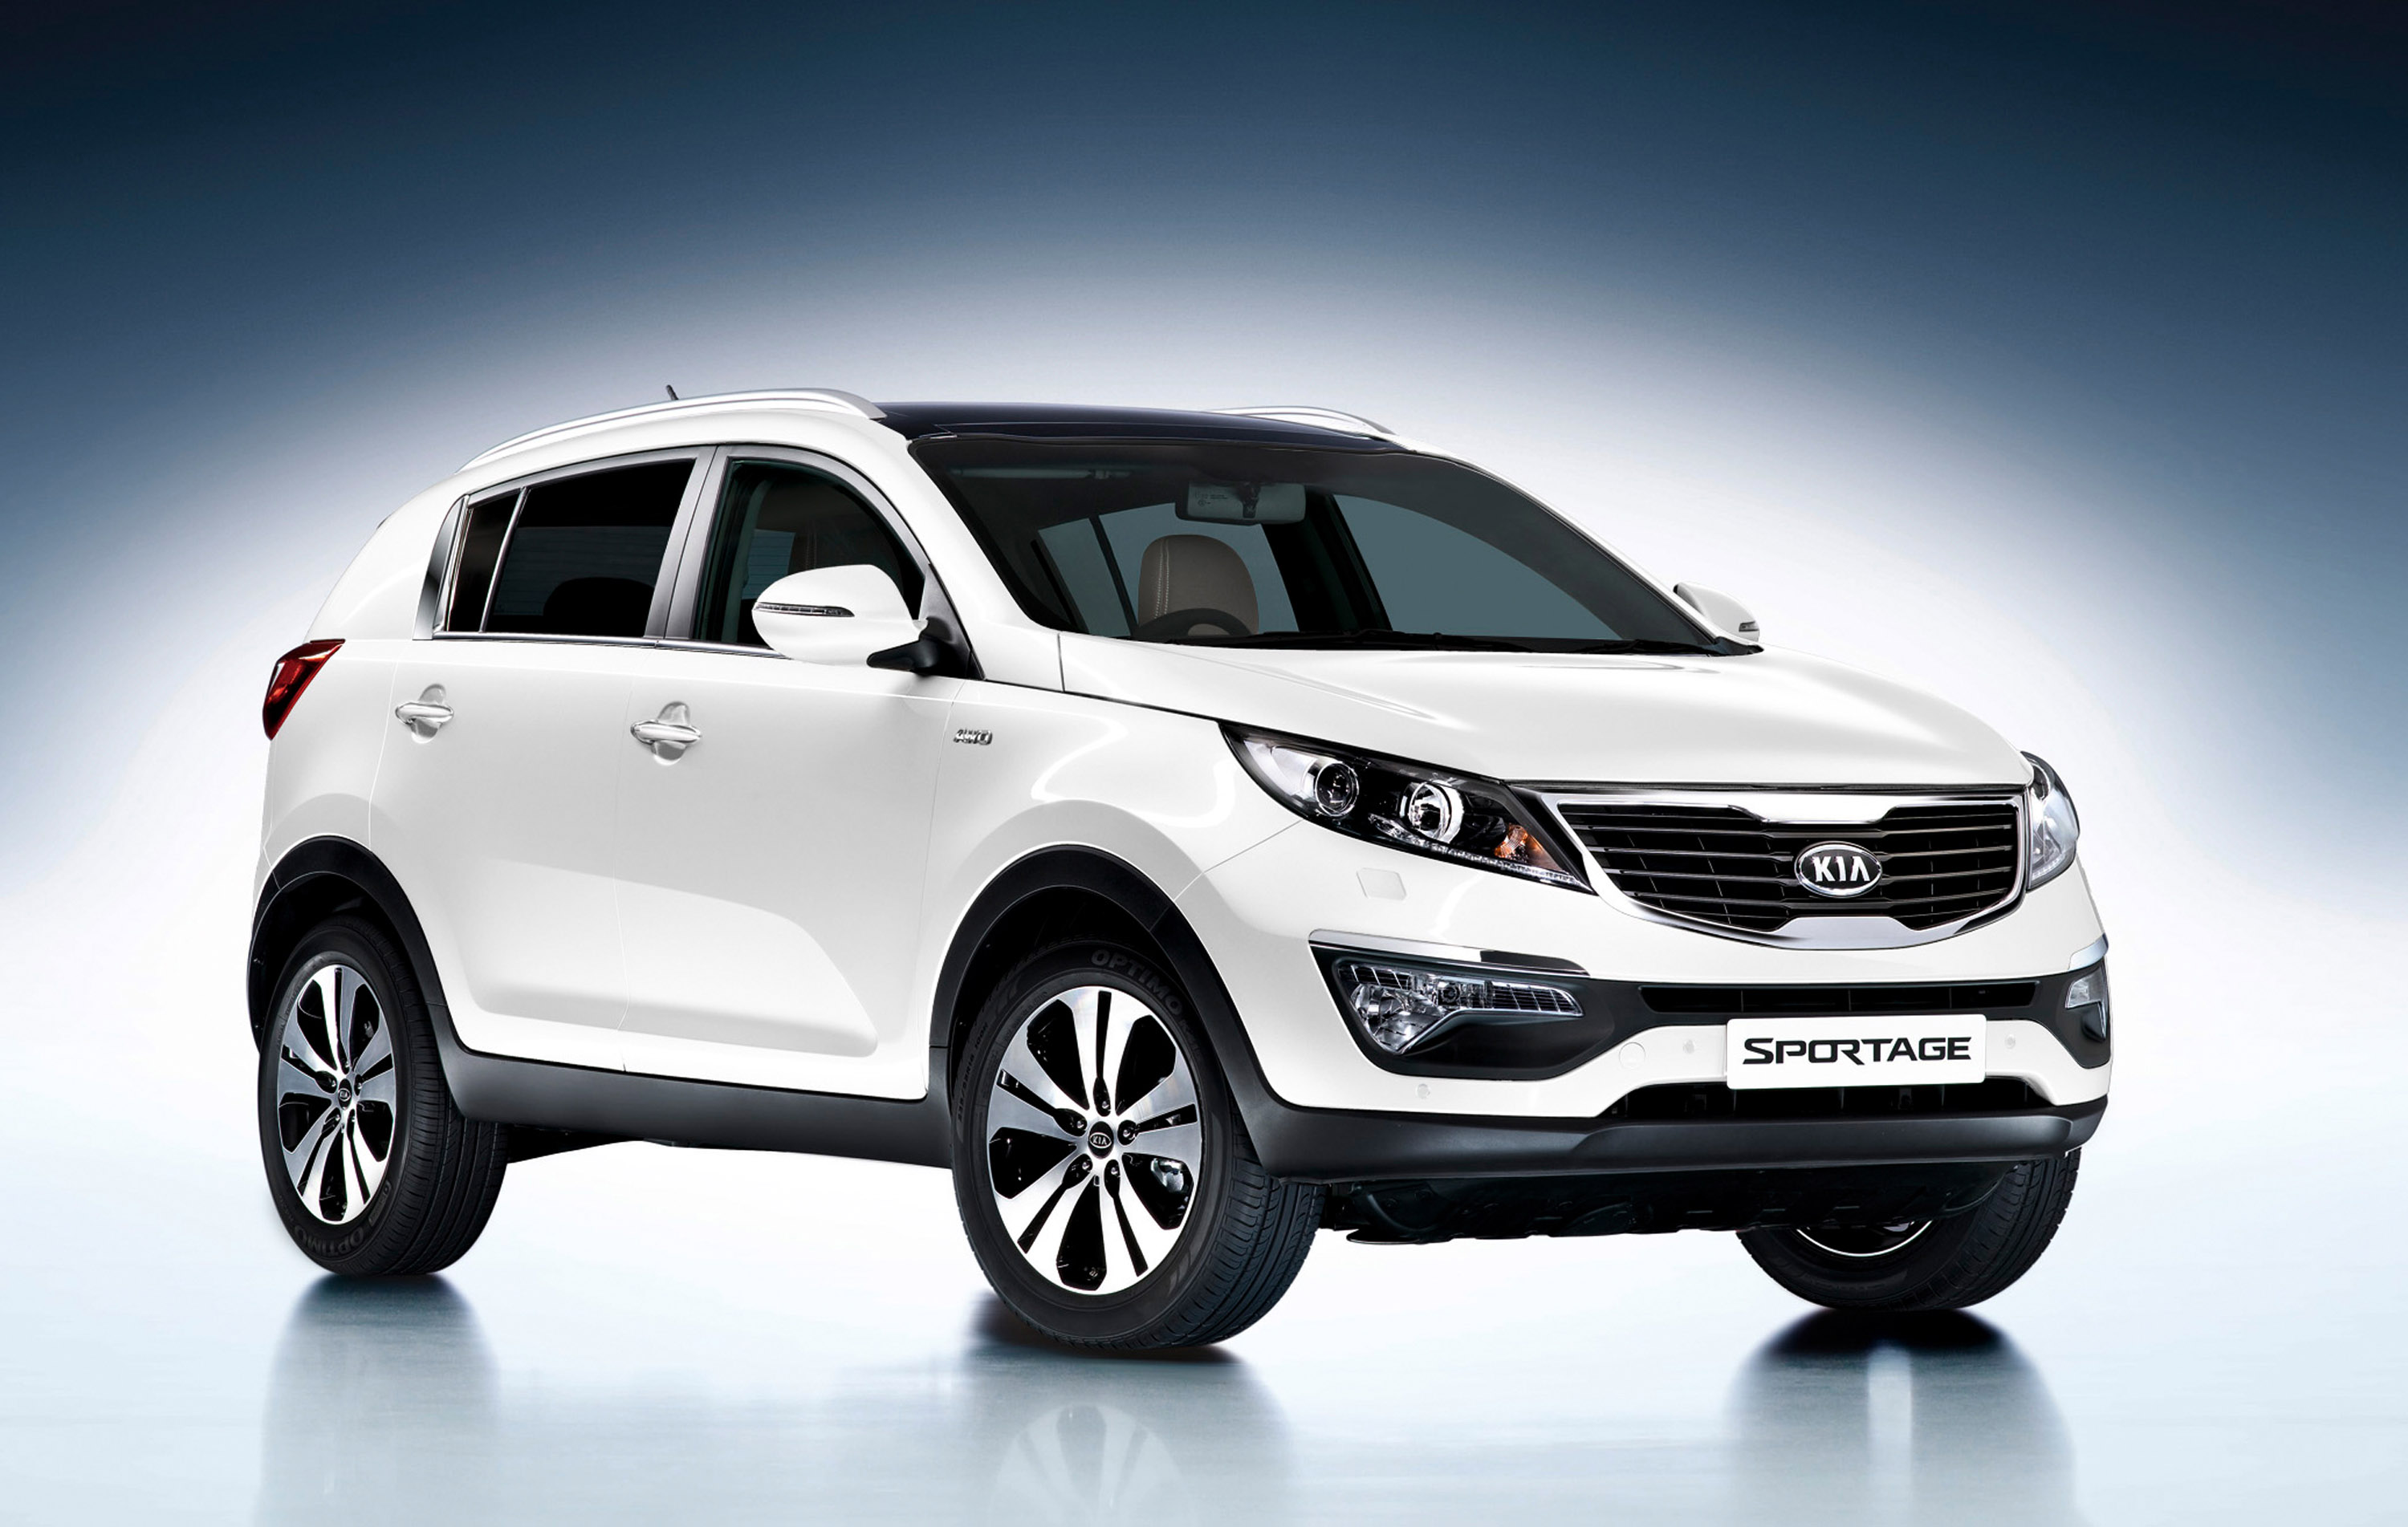 kia release top of the range sportage kx 4. Black Bedroom Furniture Sets. Home Design Ideas